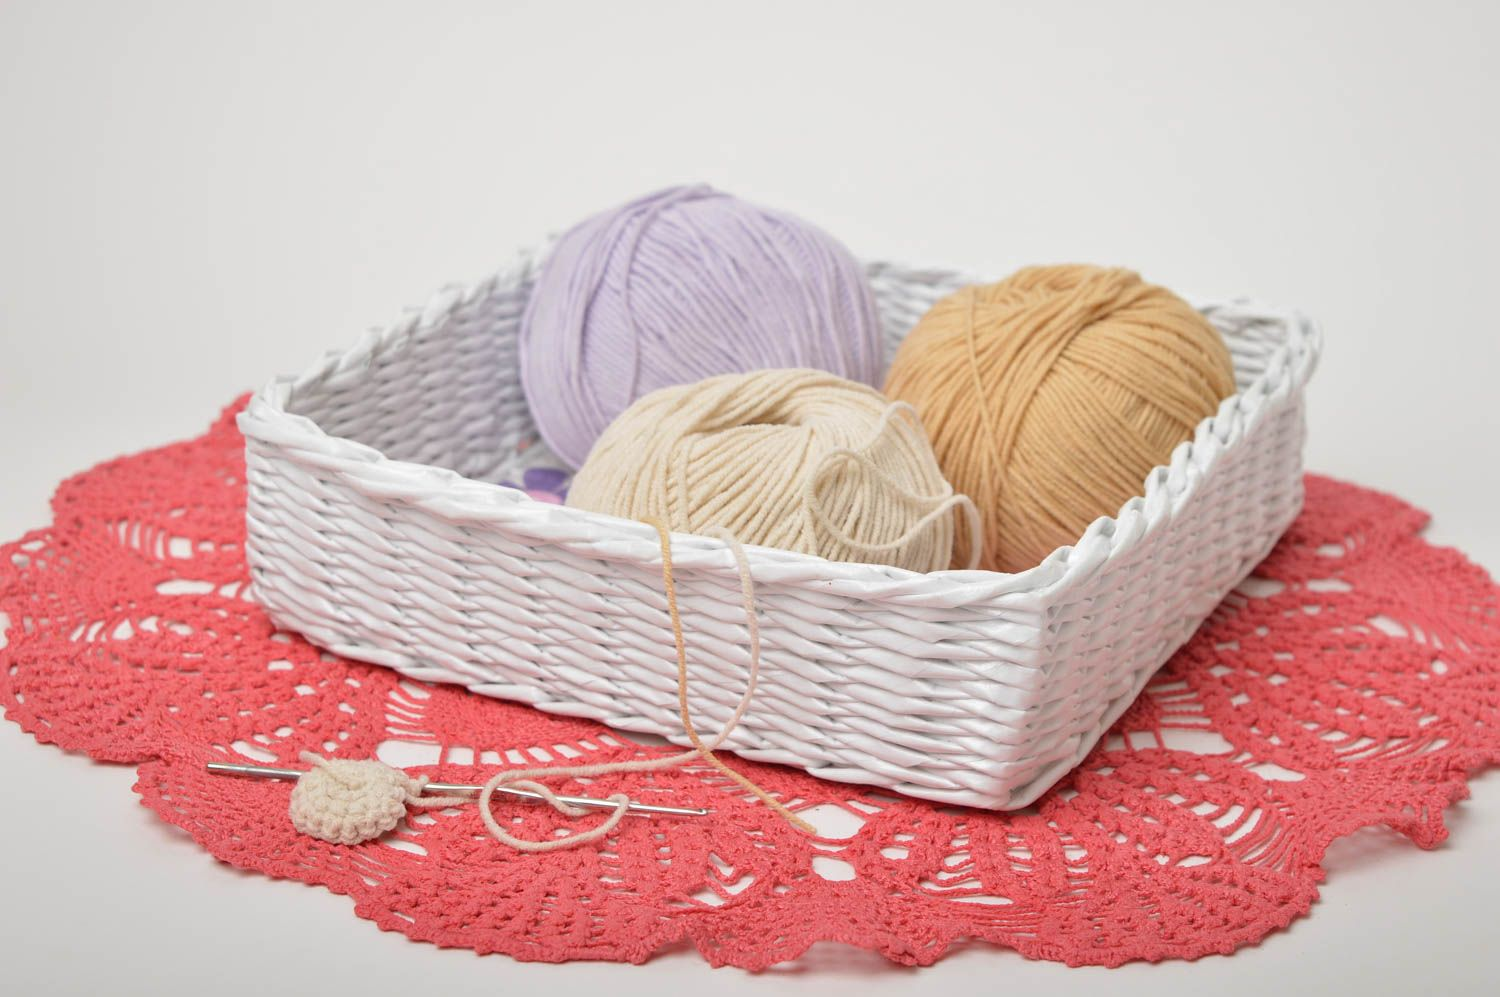 Handmade decorations woven basket paper basket gifts for women home decor photo 1